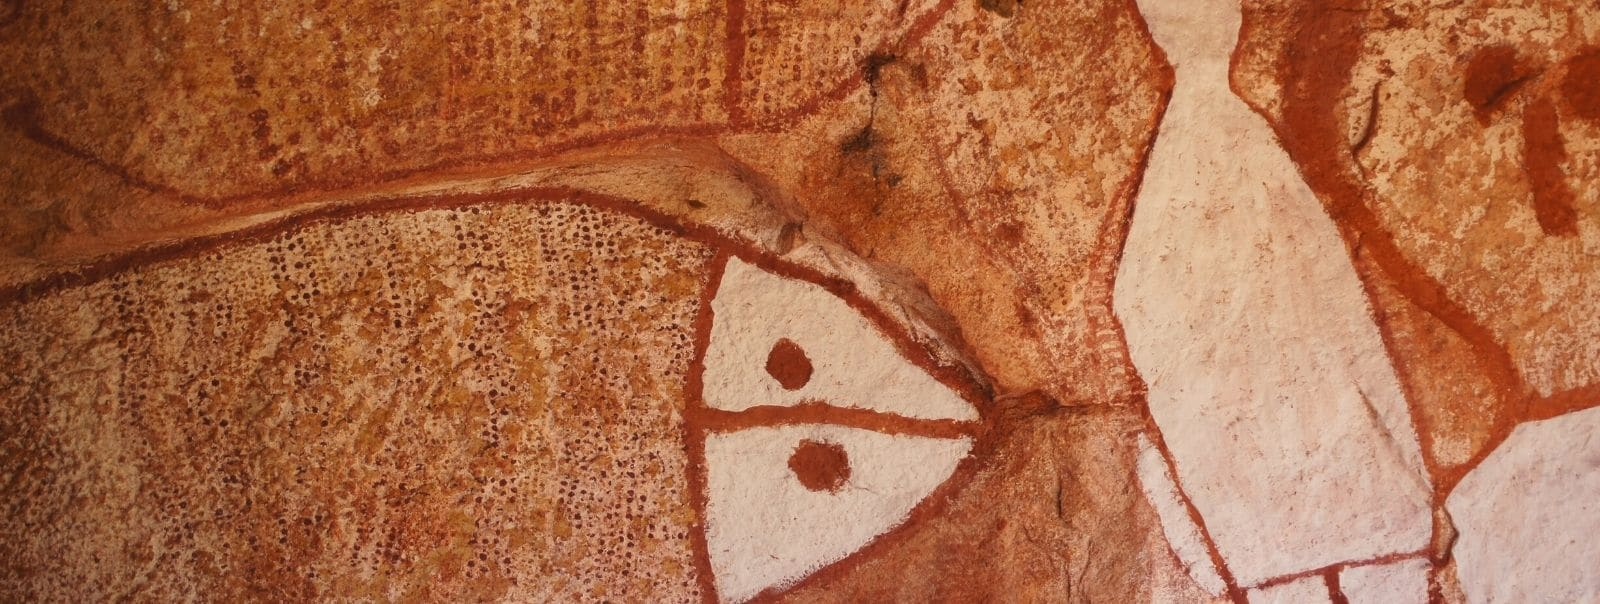 Aboriginal cave paintings of fish in red and white ochre from Ancient Australia